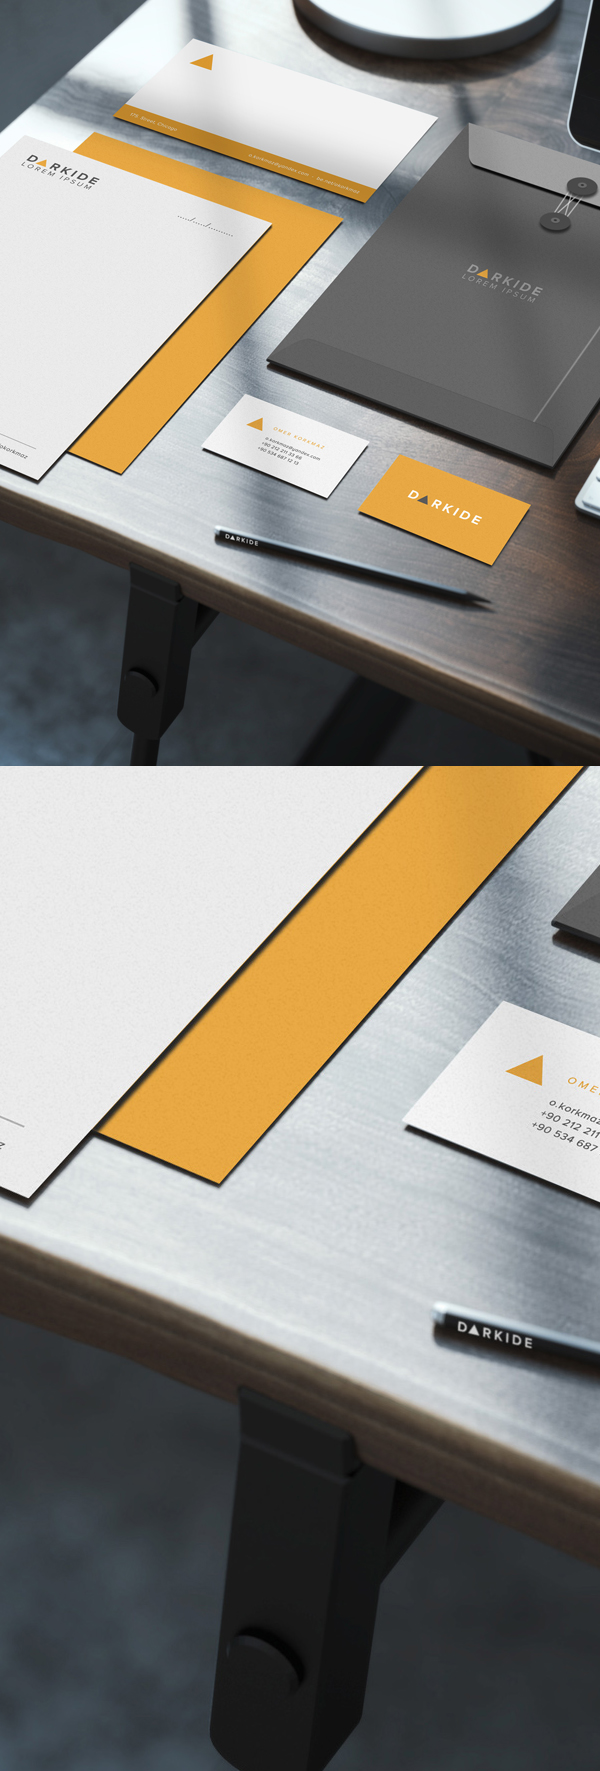 Free Realistic Corporate Identity Mockup